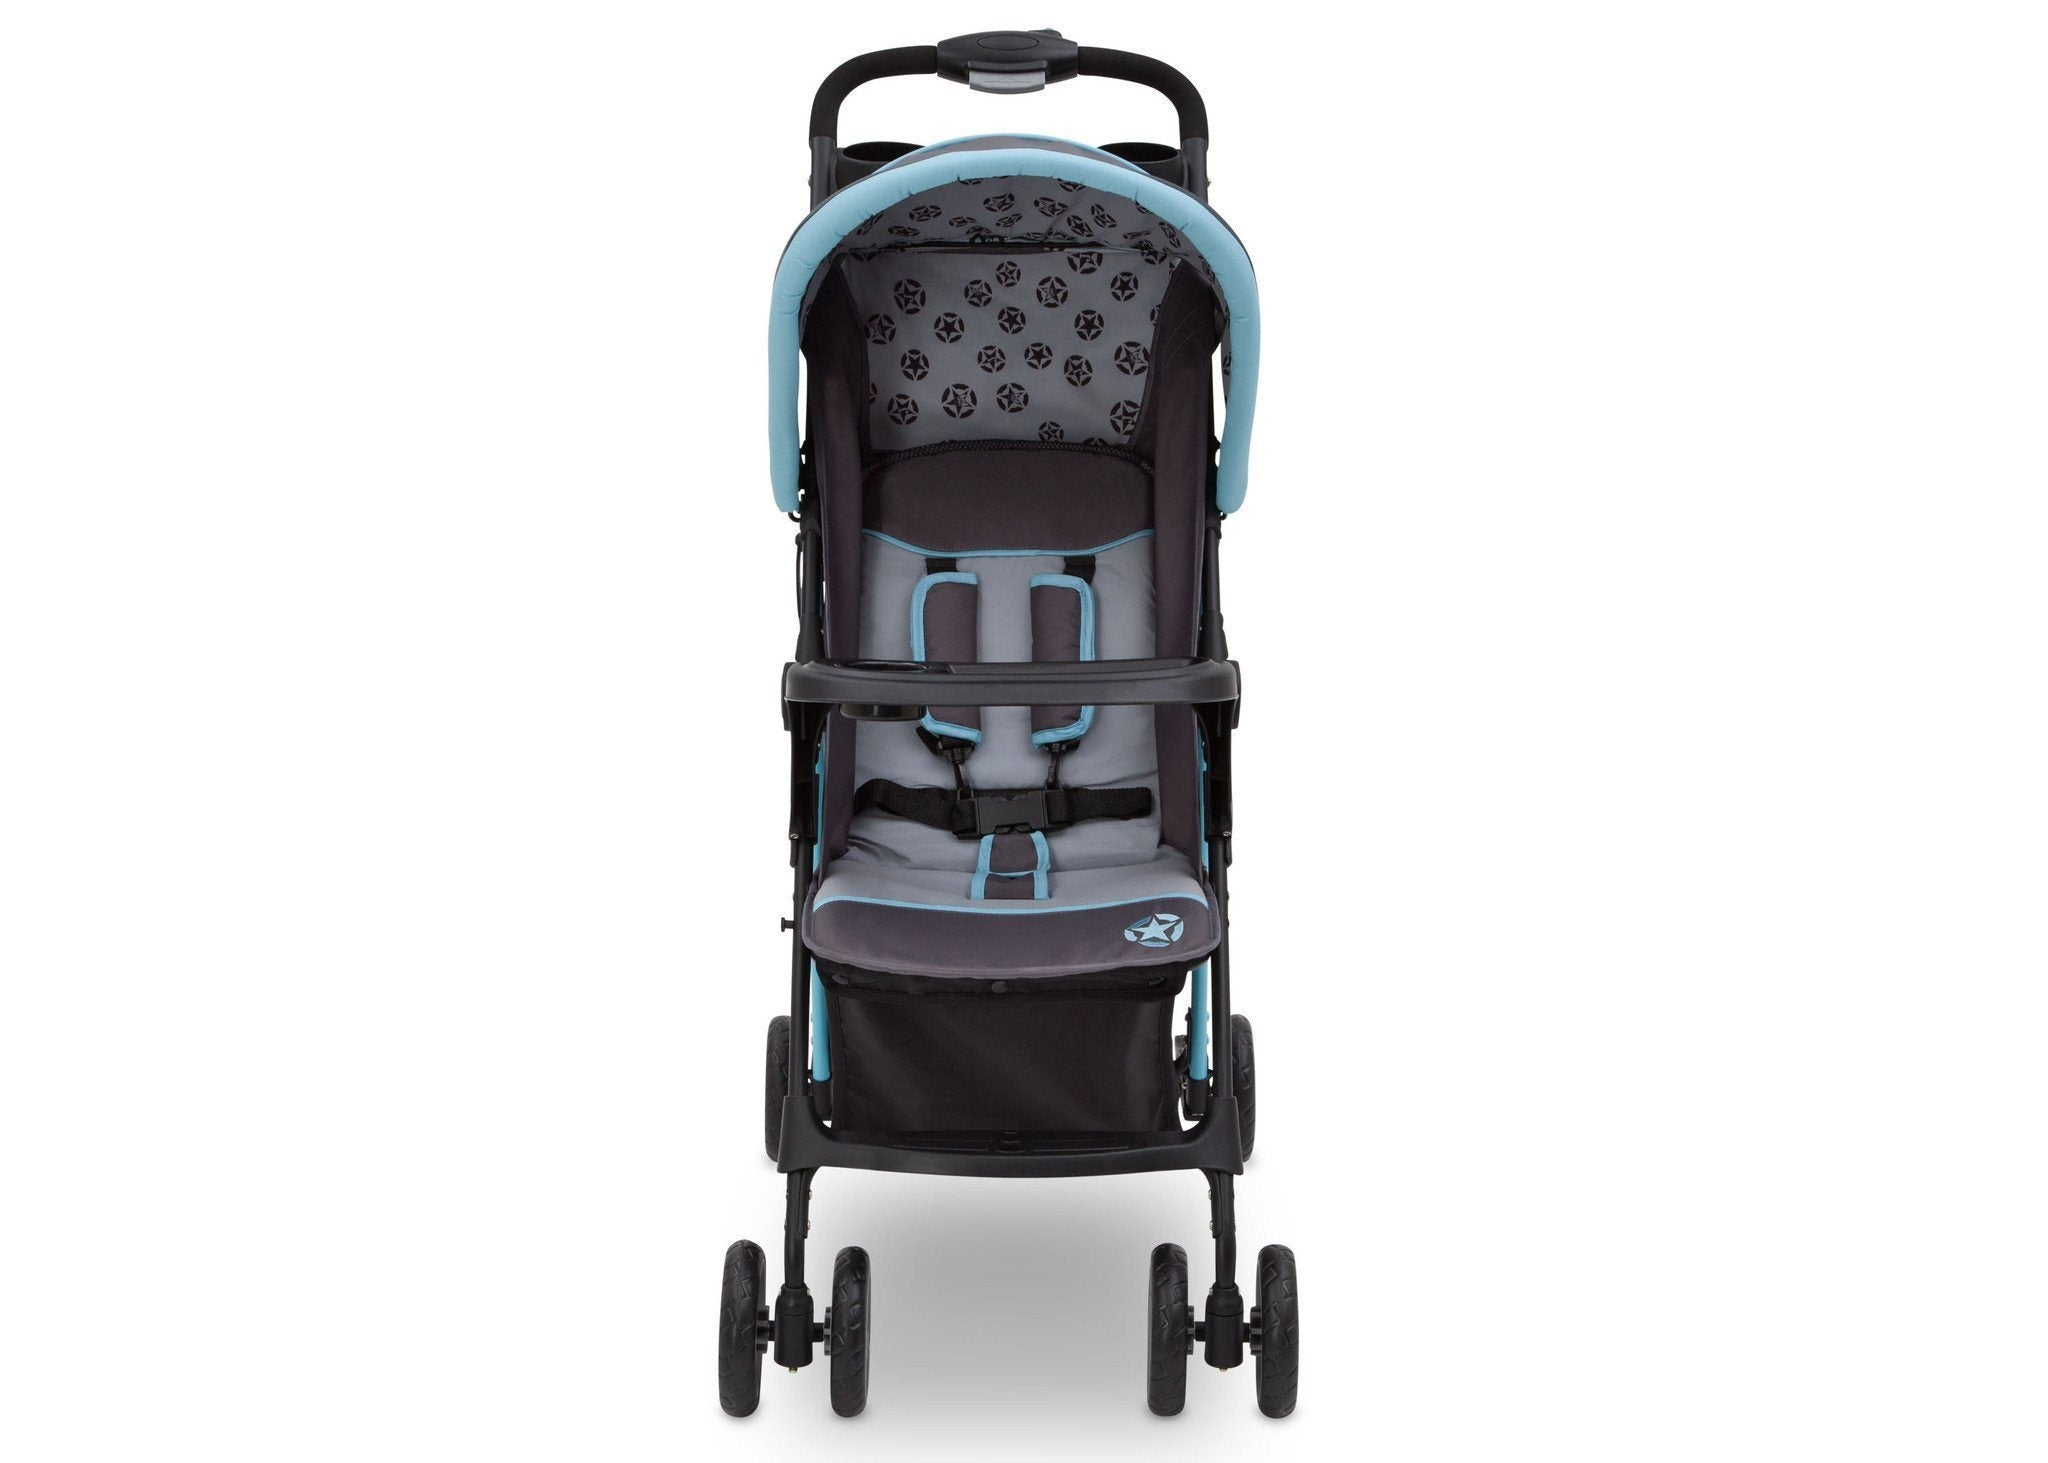 Delta Children Satellite (094) J is for Jeep Brand Metro Stroller Front View b3b